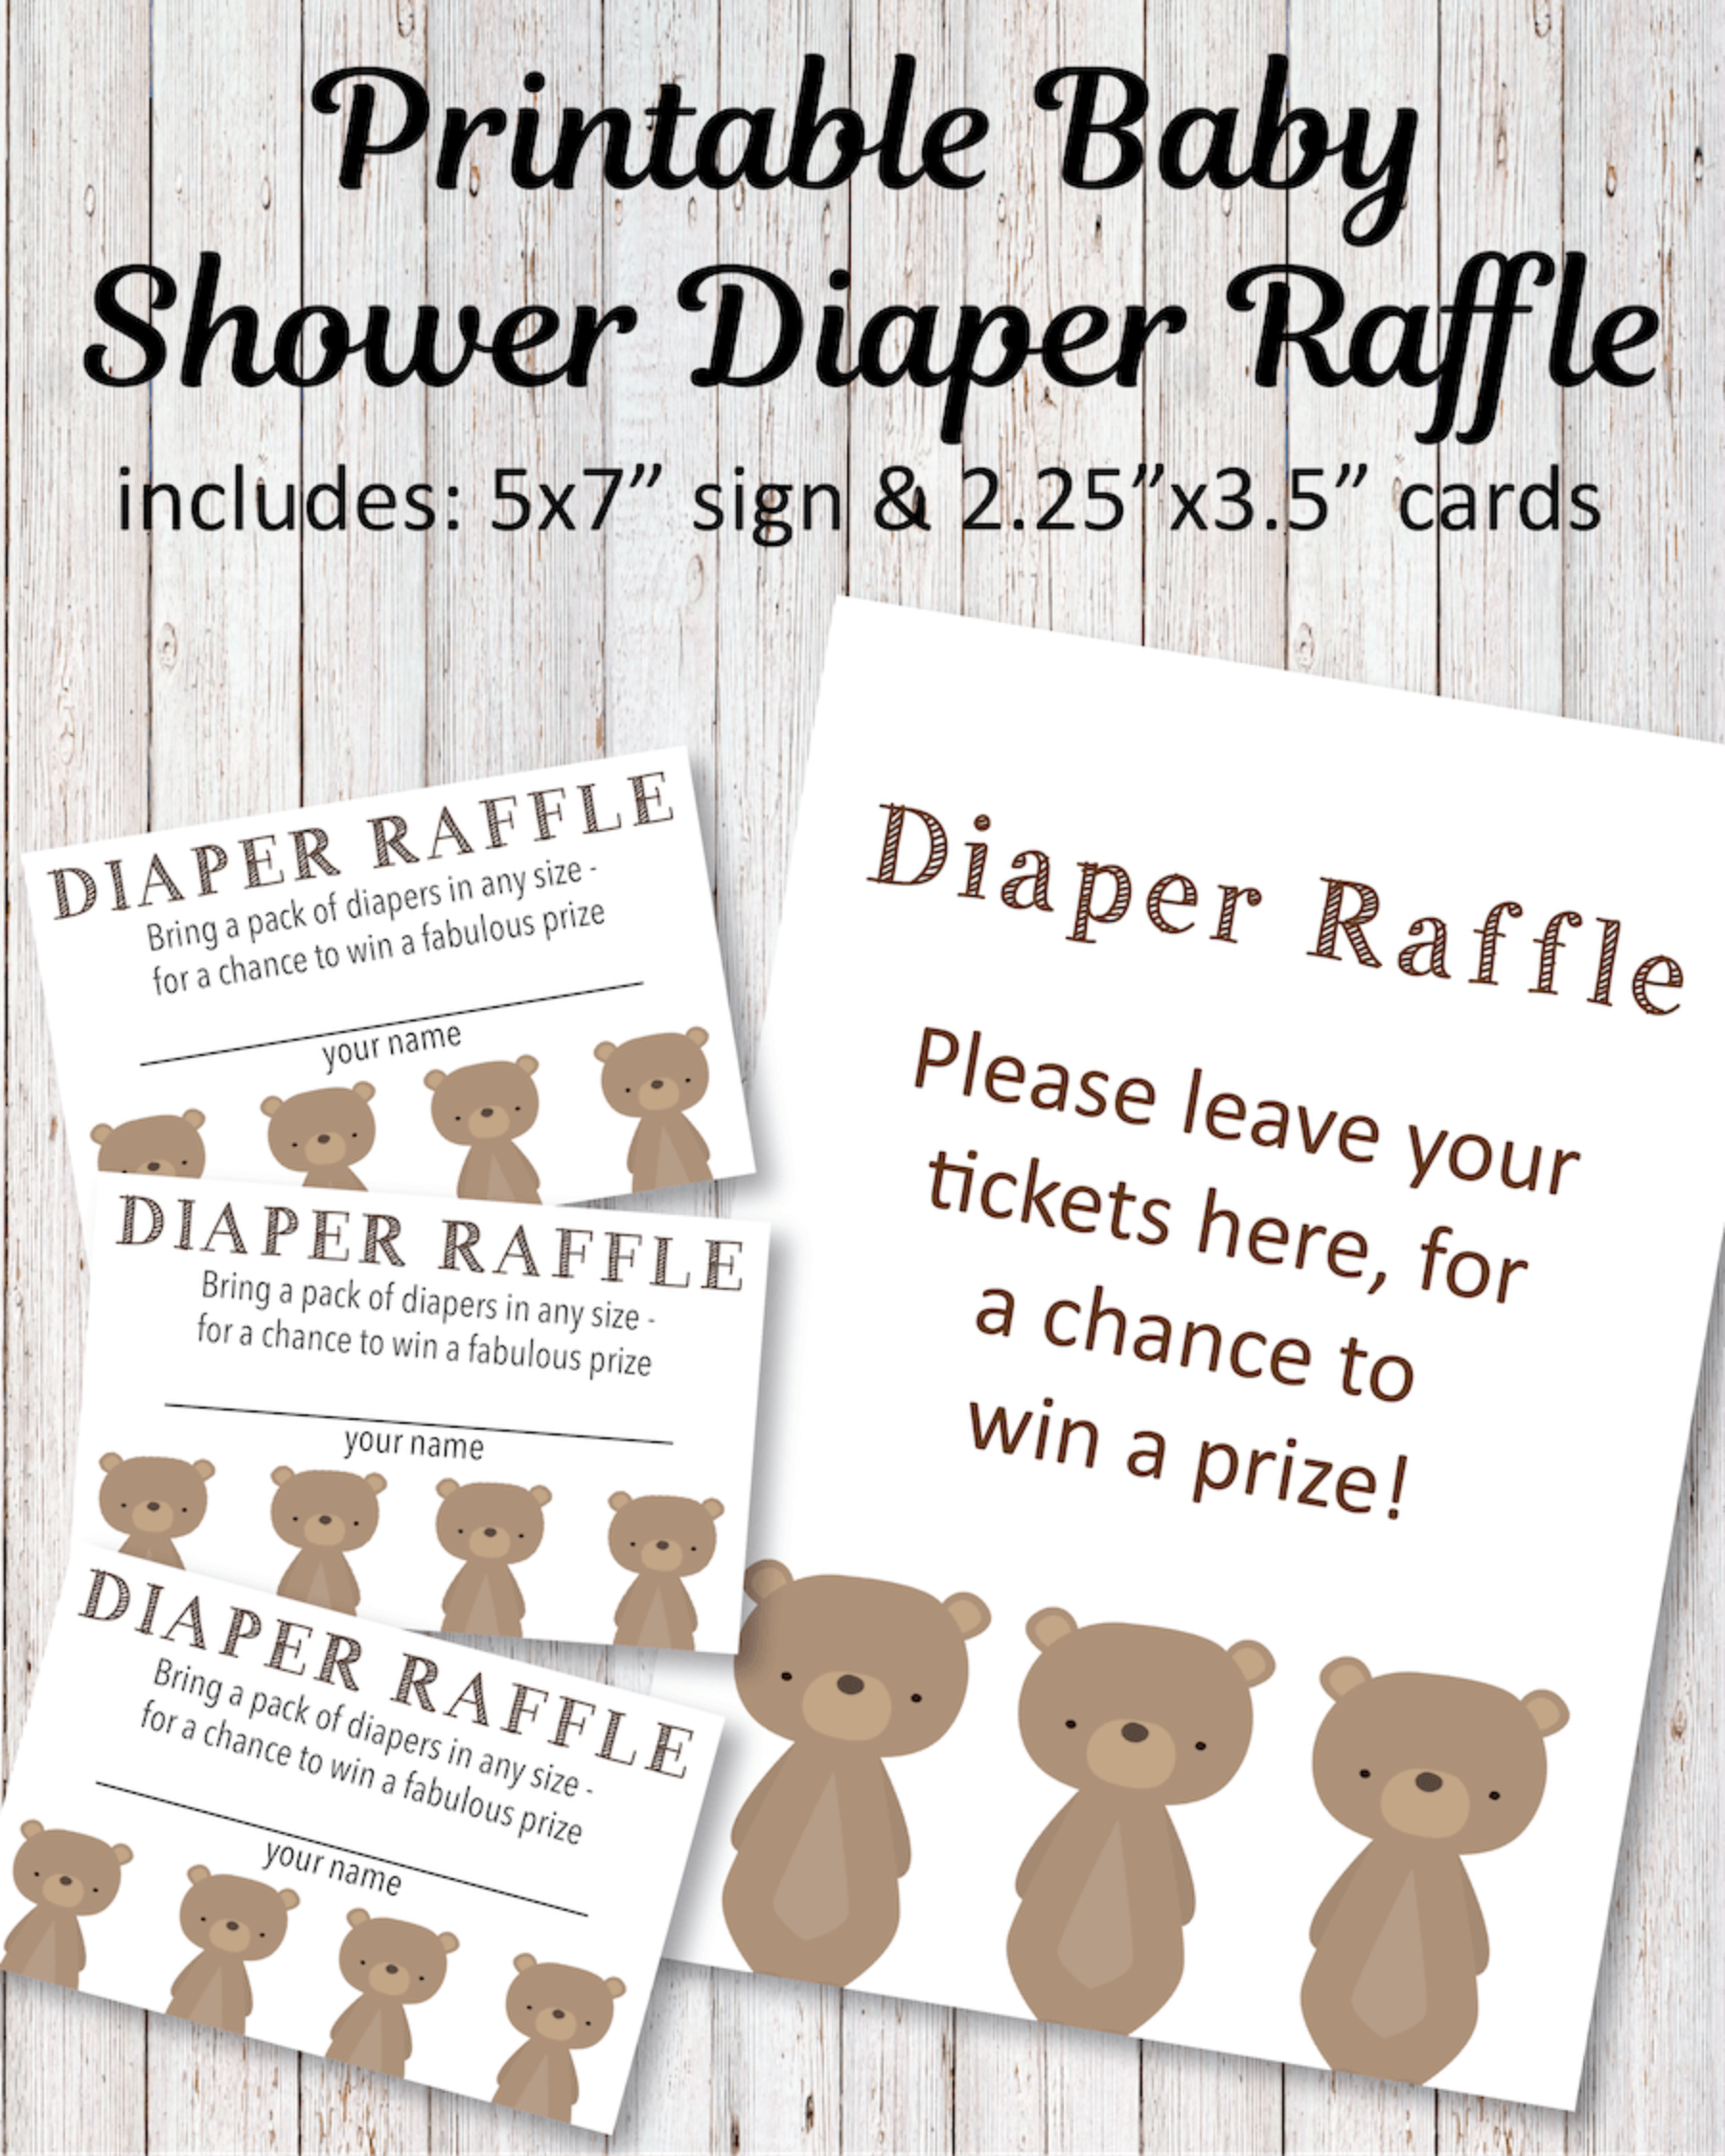 Printable Baby Shower Diaper Raffle Tickets - Woodland Bear Theme